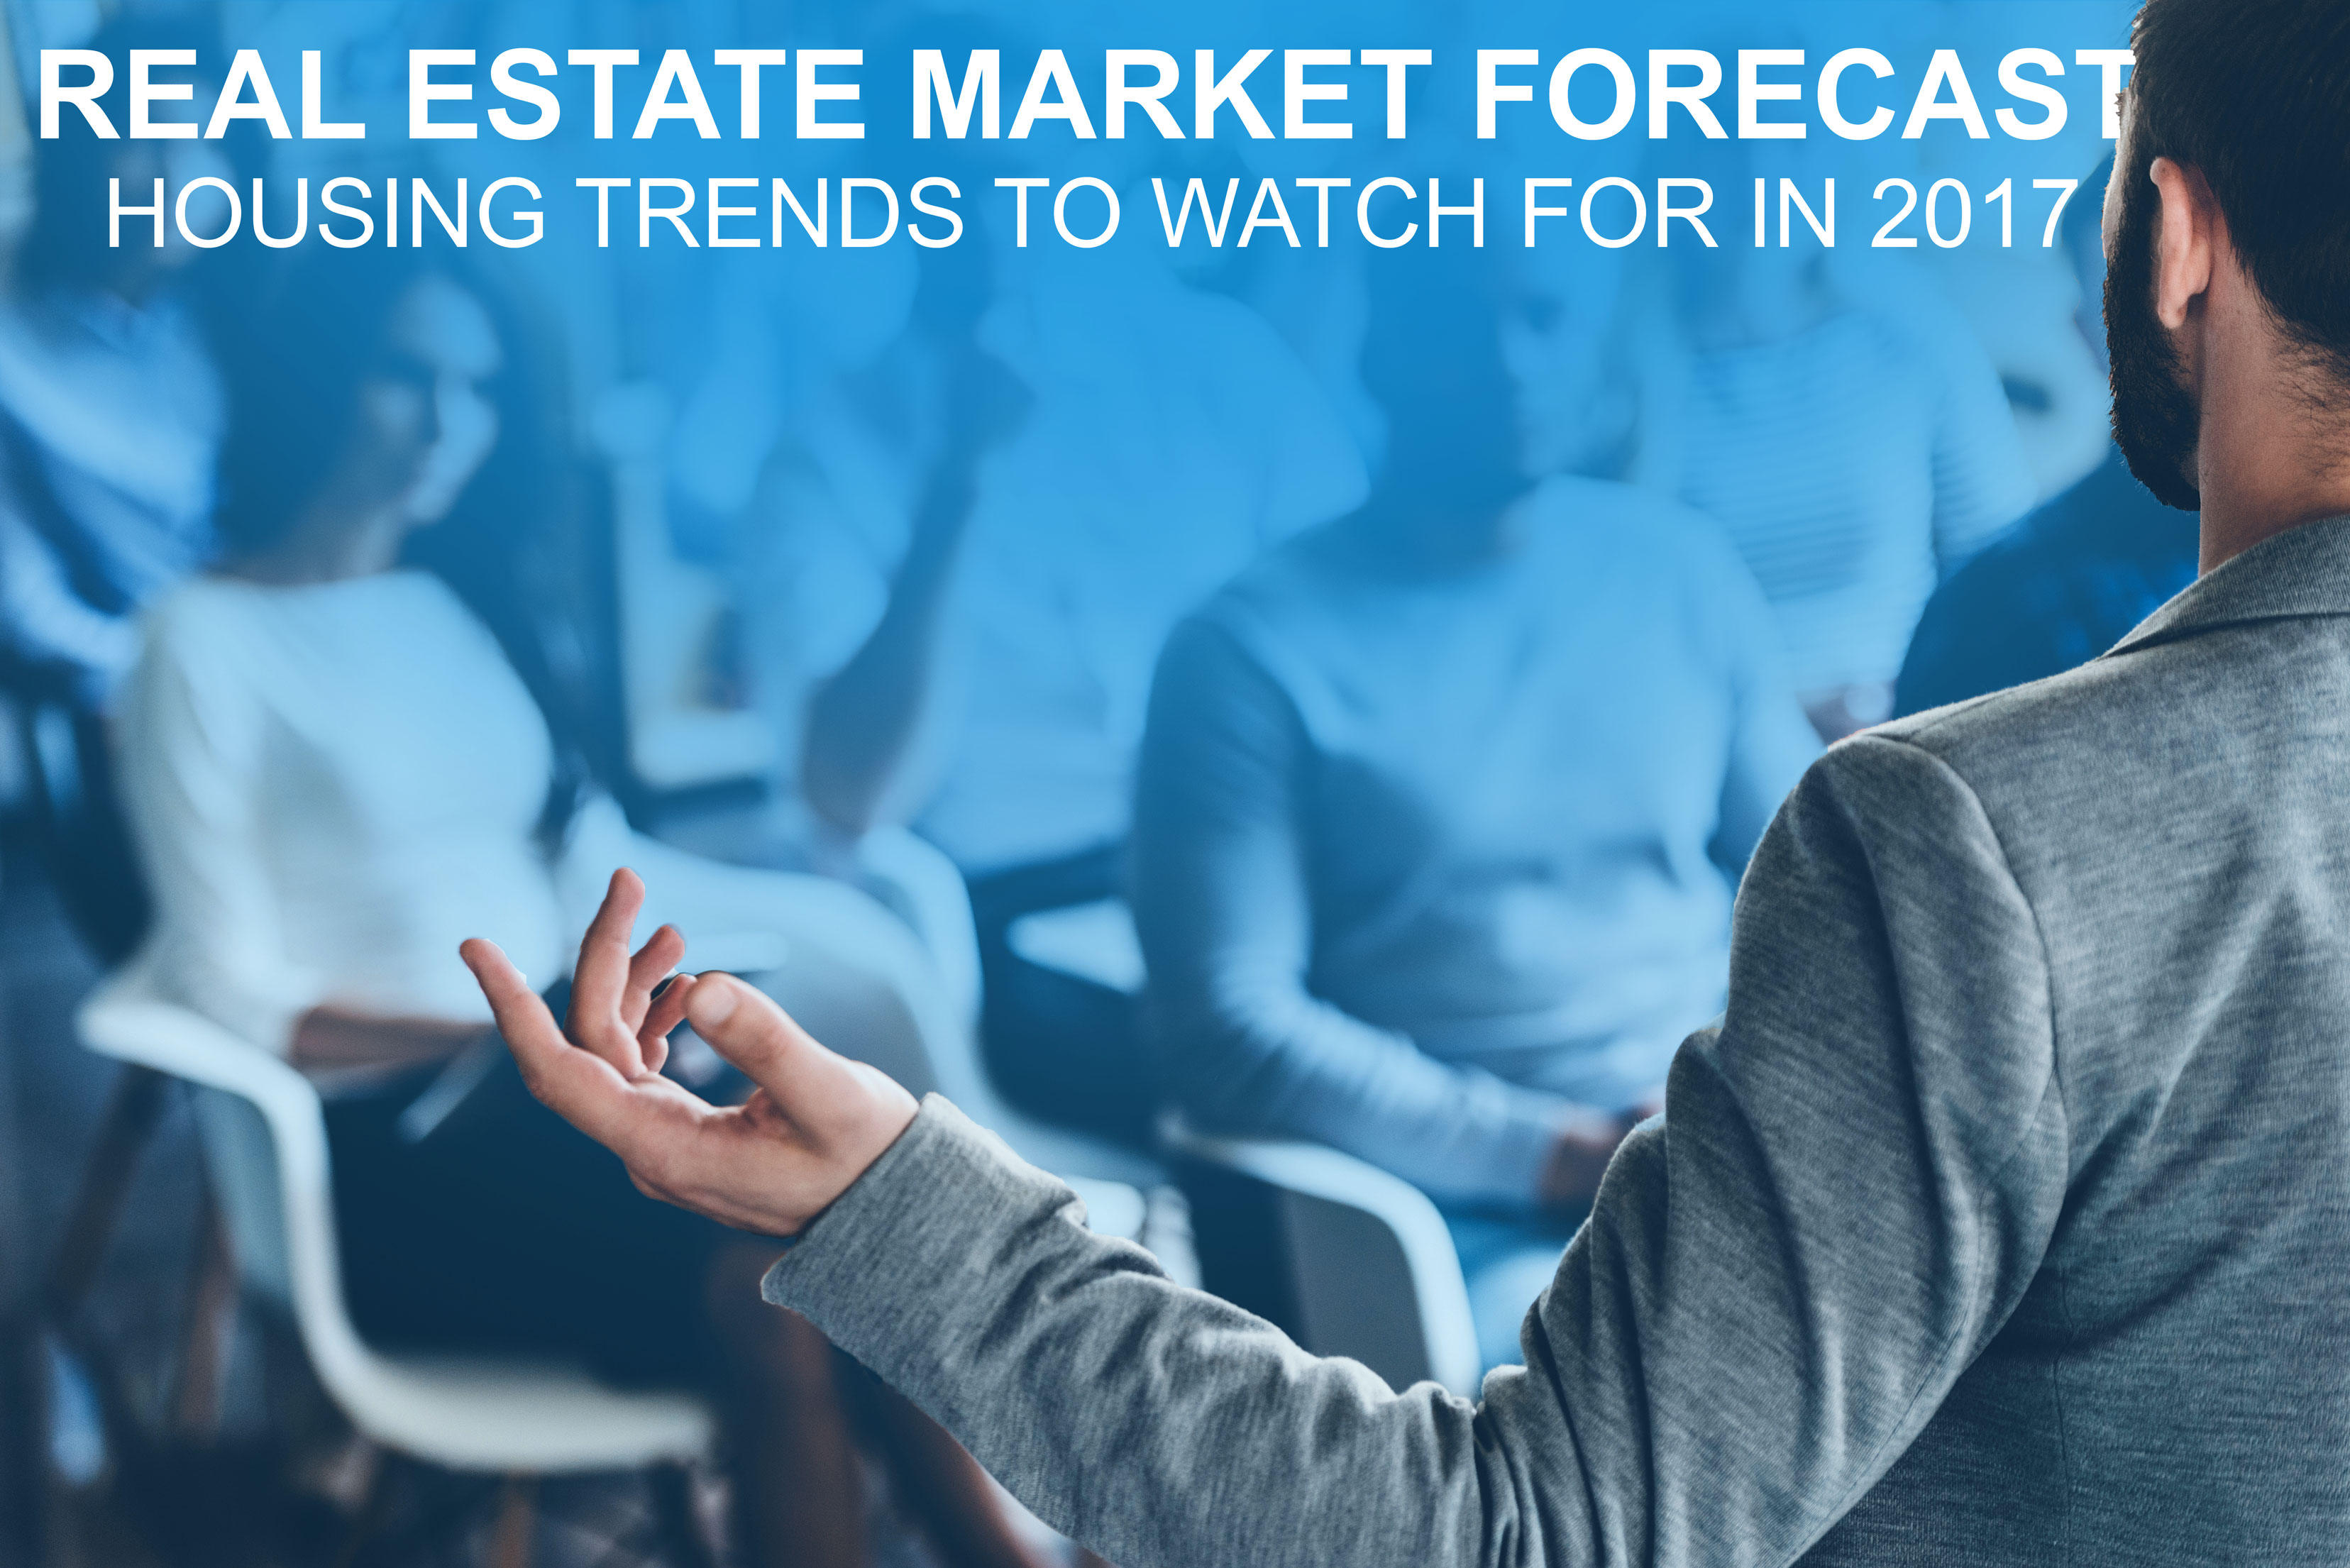 estate market forecast: housing market trends to watch for in 2017